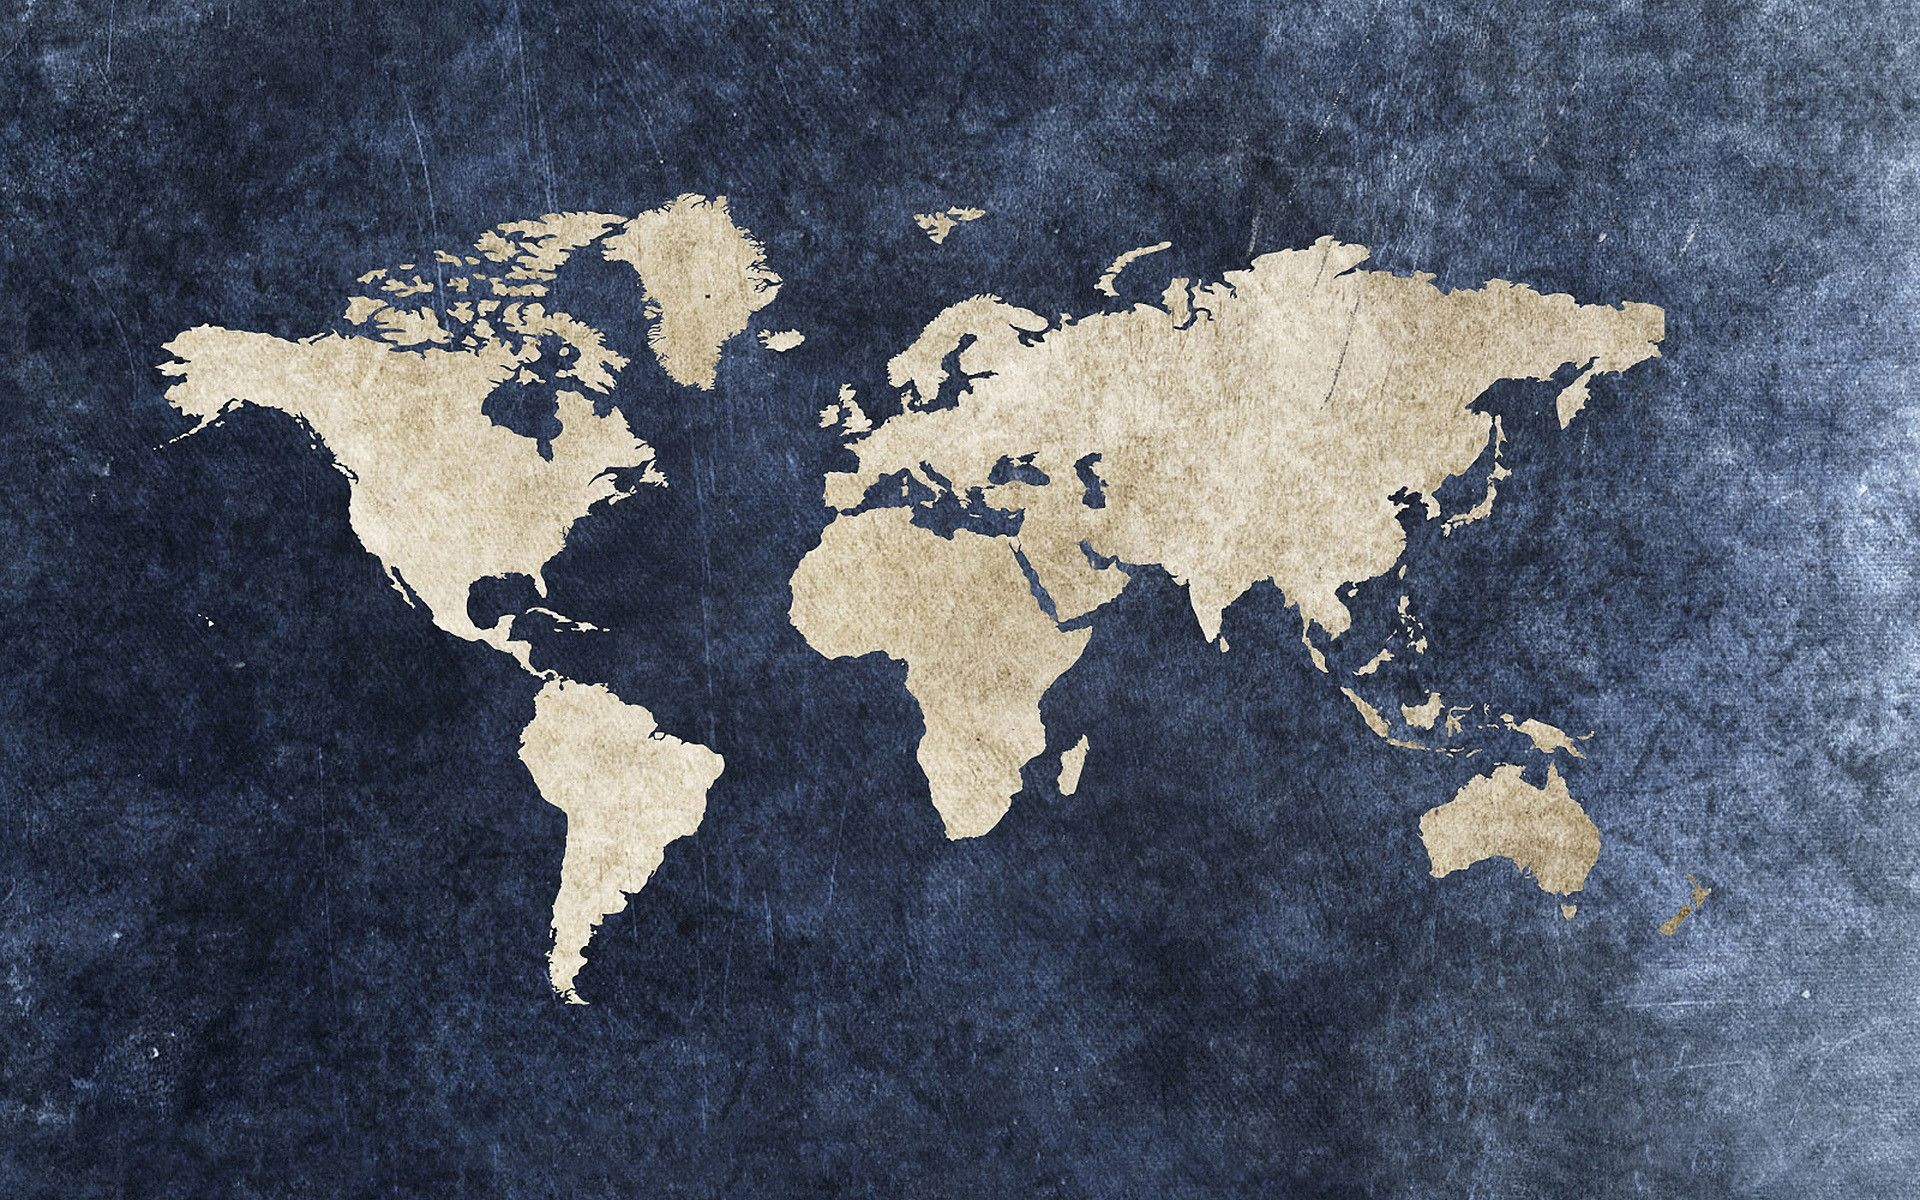 Global map wallpaper 59 images 1920x1200 world map wallpapers full hd wallpaper search gumiabroncs Image collections